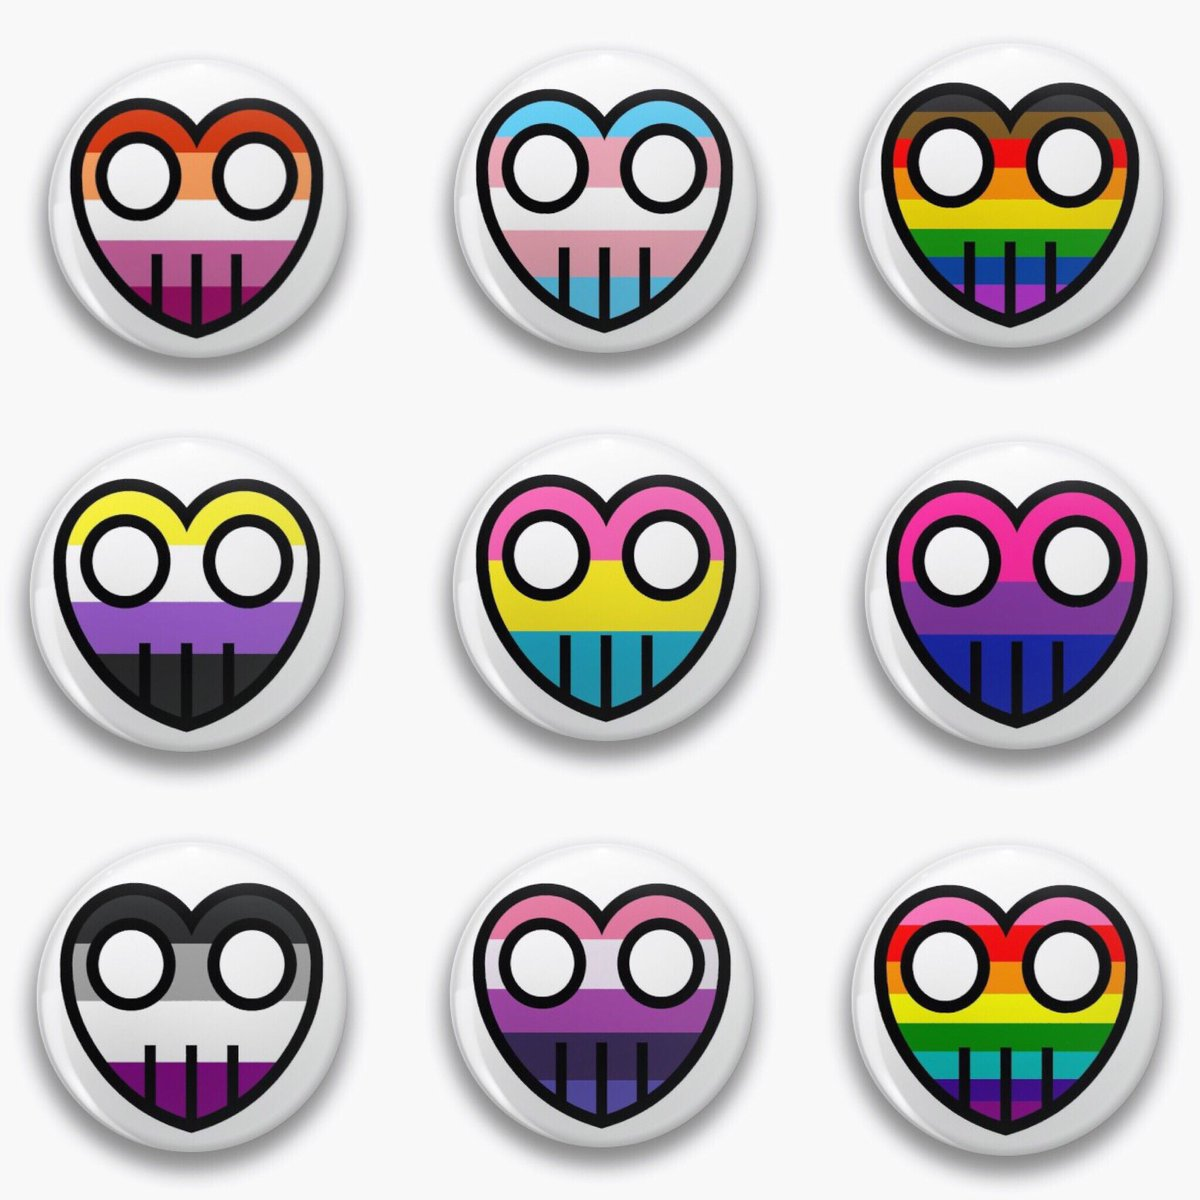 Happy Pride! Heart logo buttons are now up on Redbubble! Find them here: https://www.redbubble.com/people/Picklerocket/shop?utm_source=rb-native-app&utm_campaign=share-artist&utm_medium=ios … #pride #lesbian #gay #bisexual #transgender #queer #asexual #pansexual #nonbinary #webcomic #webcomics #webcomicmerch #PrideMonth #redbubble #TheBarBots #queerart pic.twitter.com/j0ReaQJQtZ